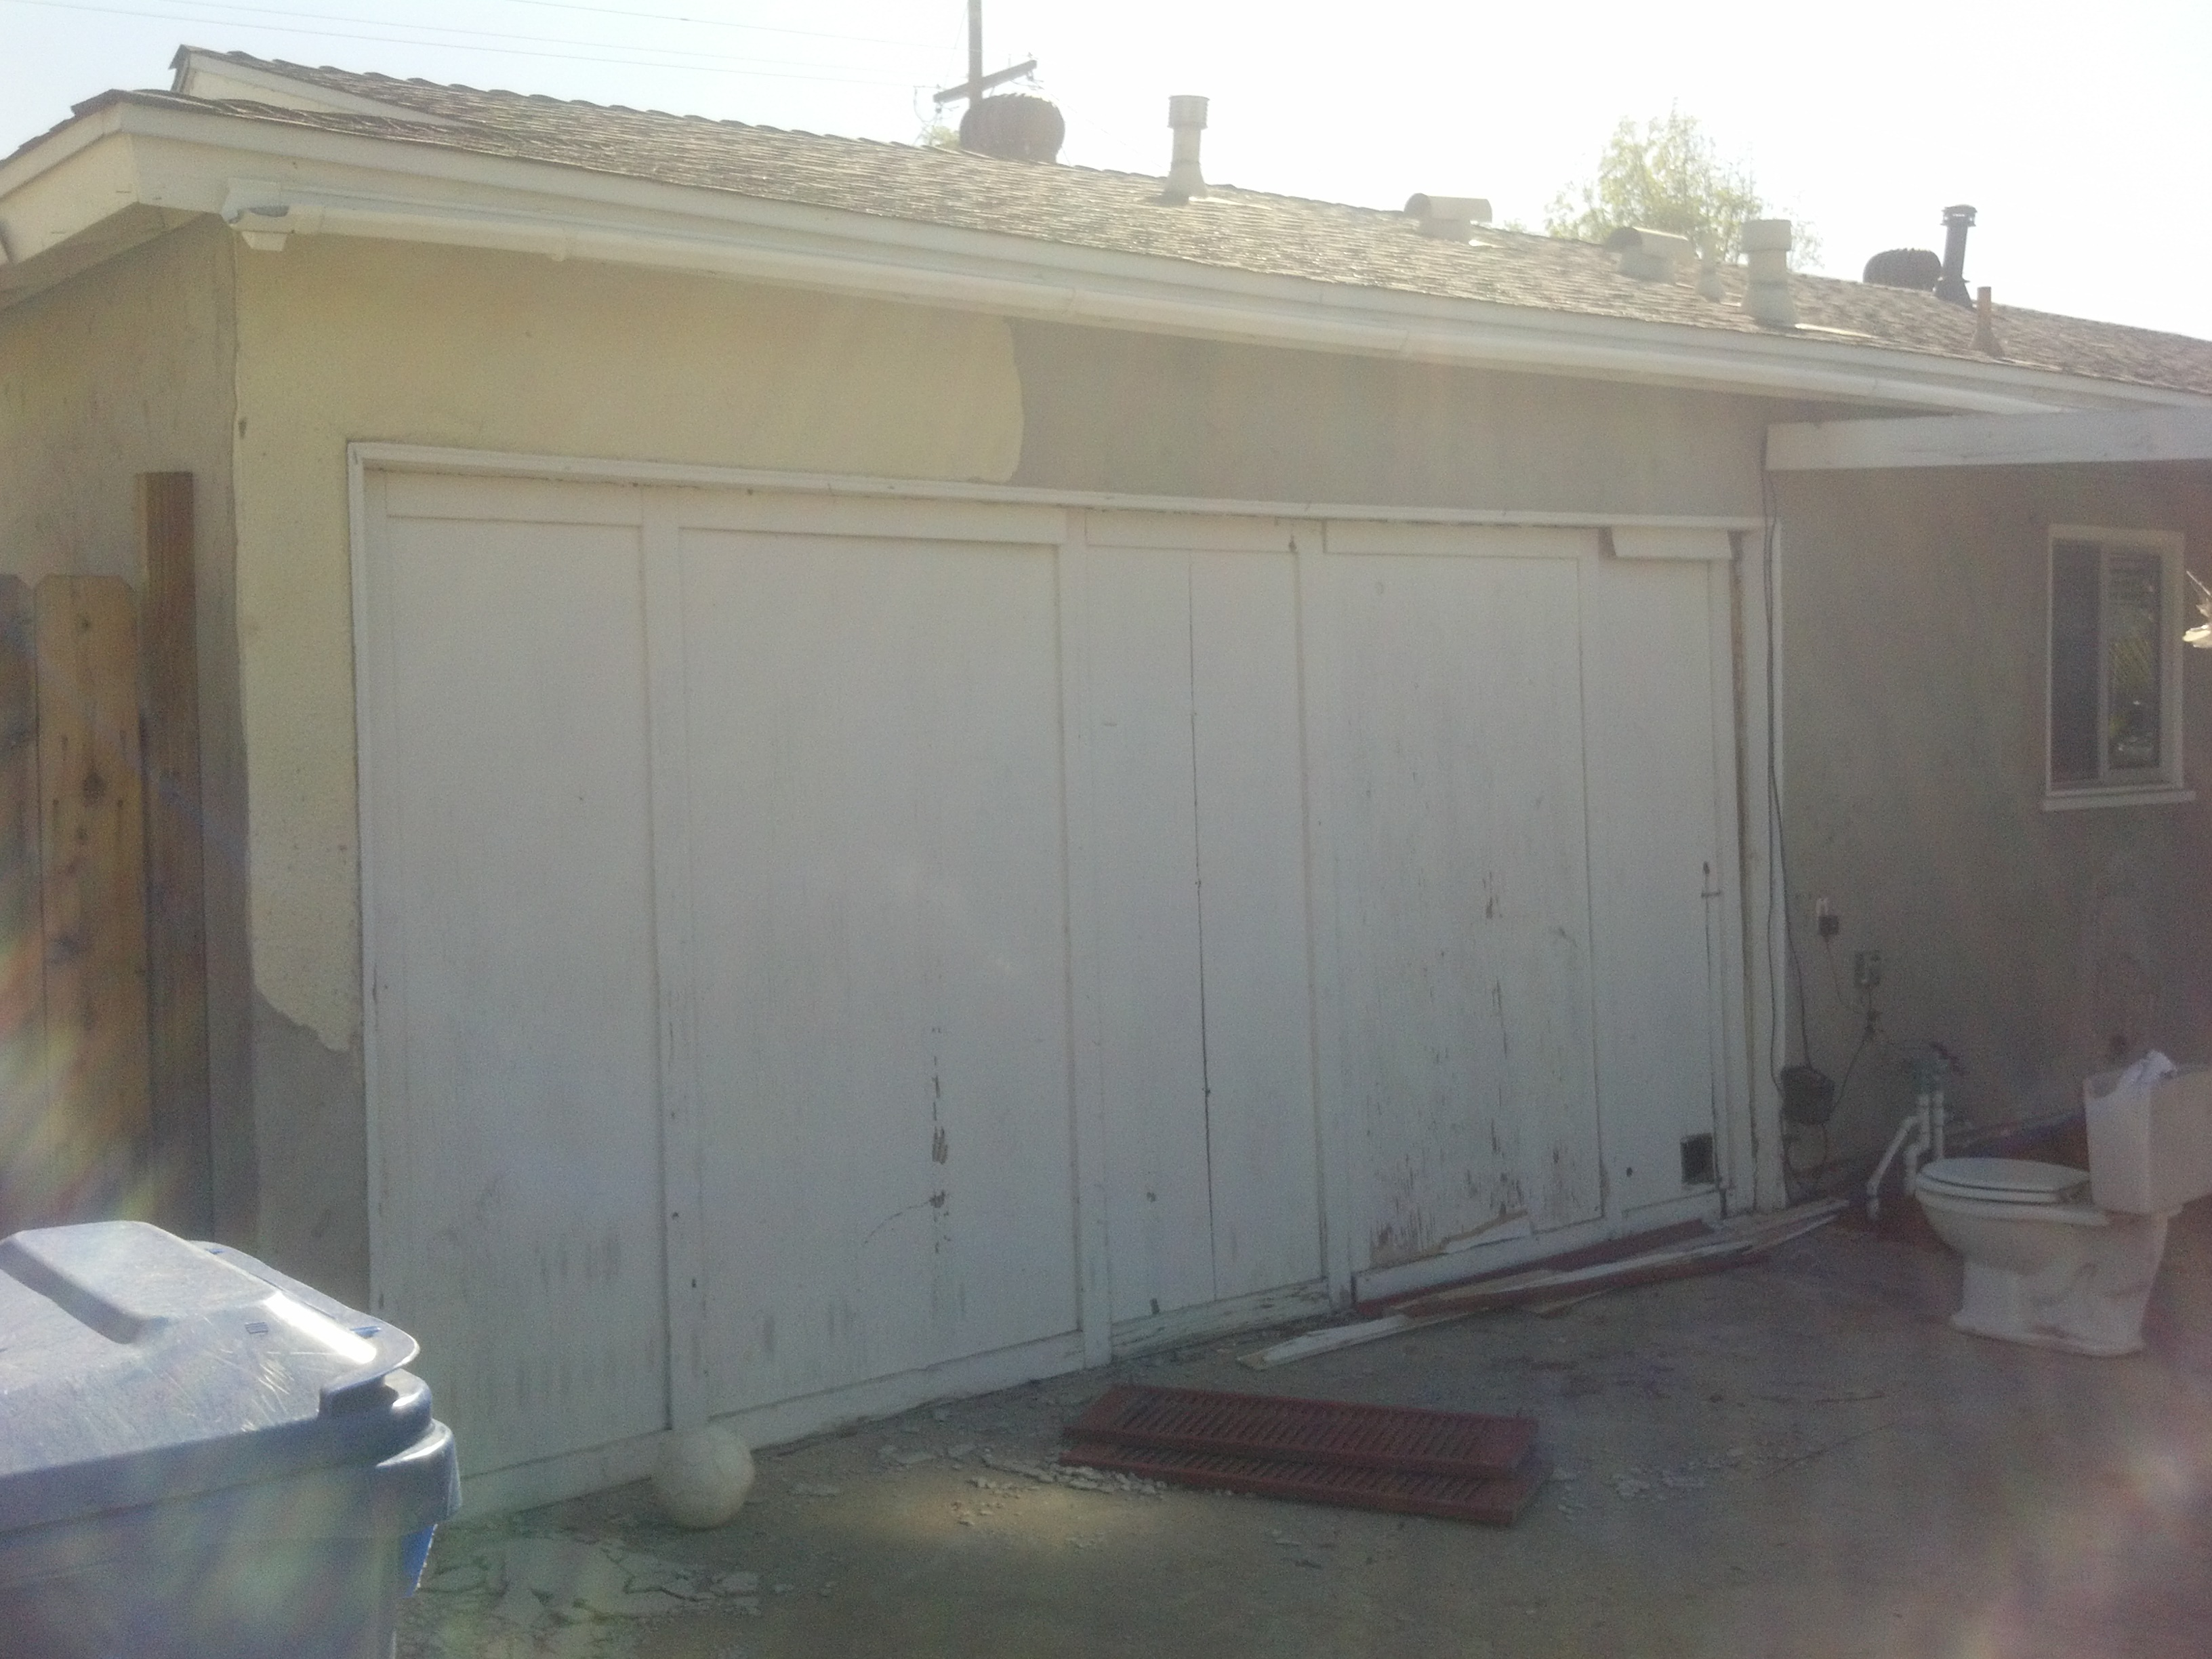 spring gear door garage doors install cost liftmaster opener replace lowes to